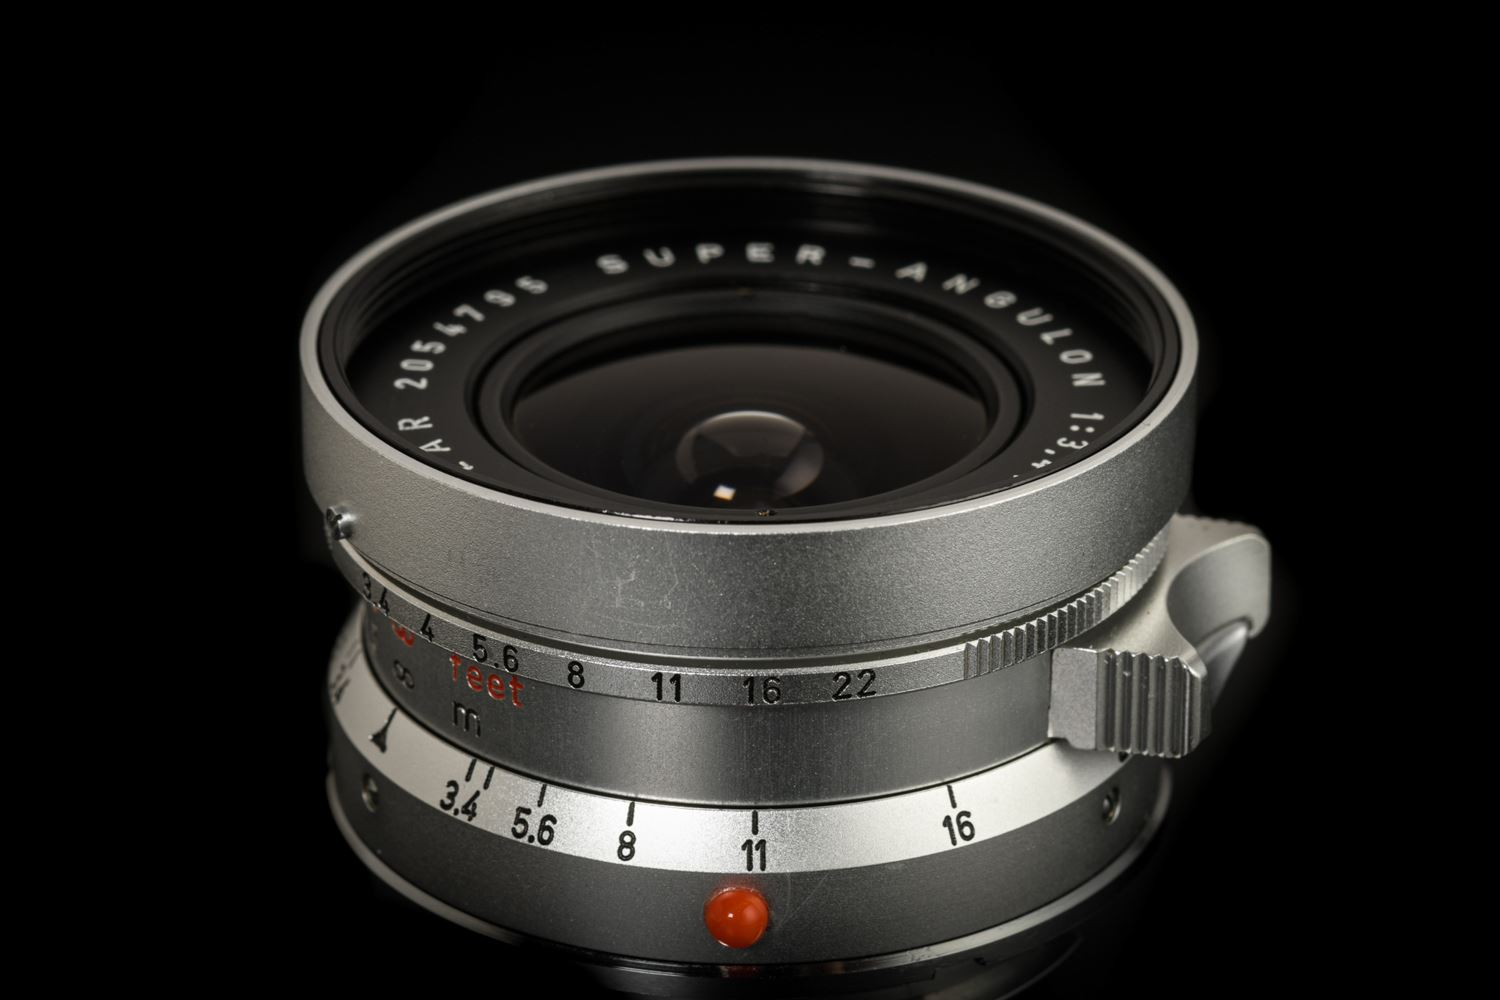 Picture of Leica Super-Angulon 21mm f/3.4 Silver with View Finder